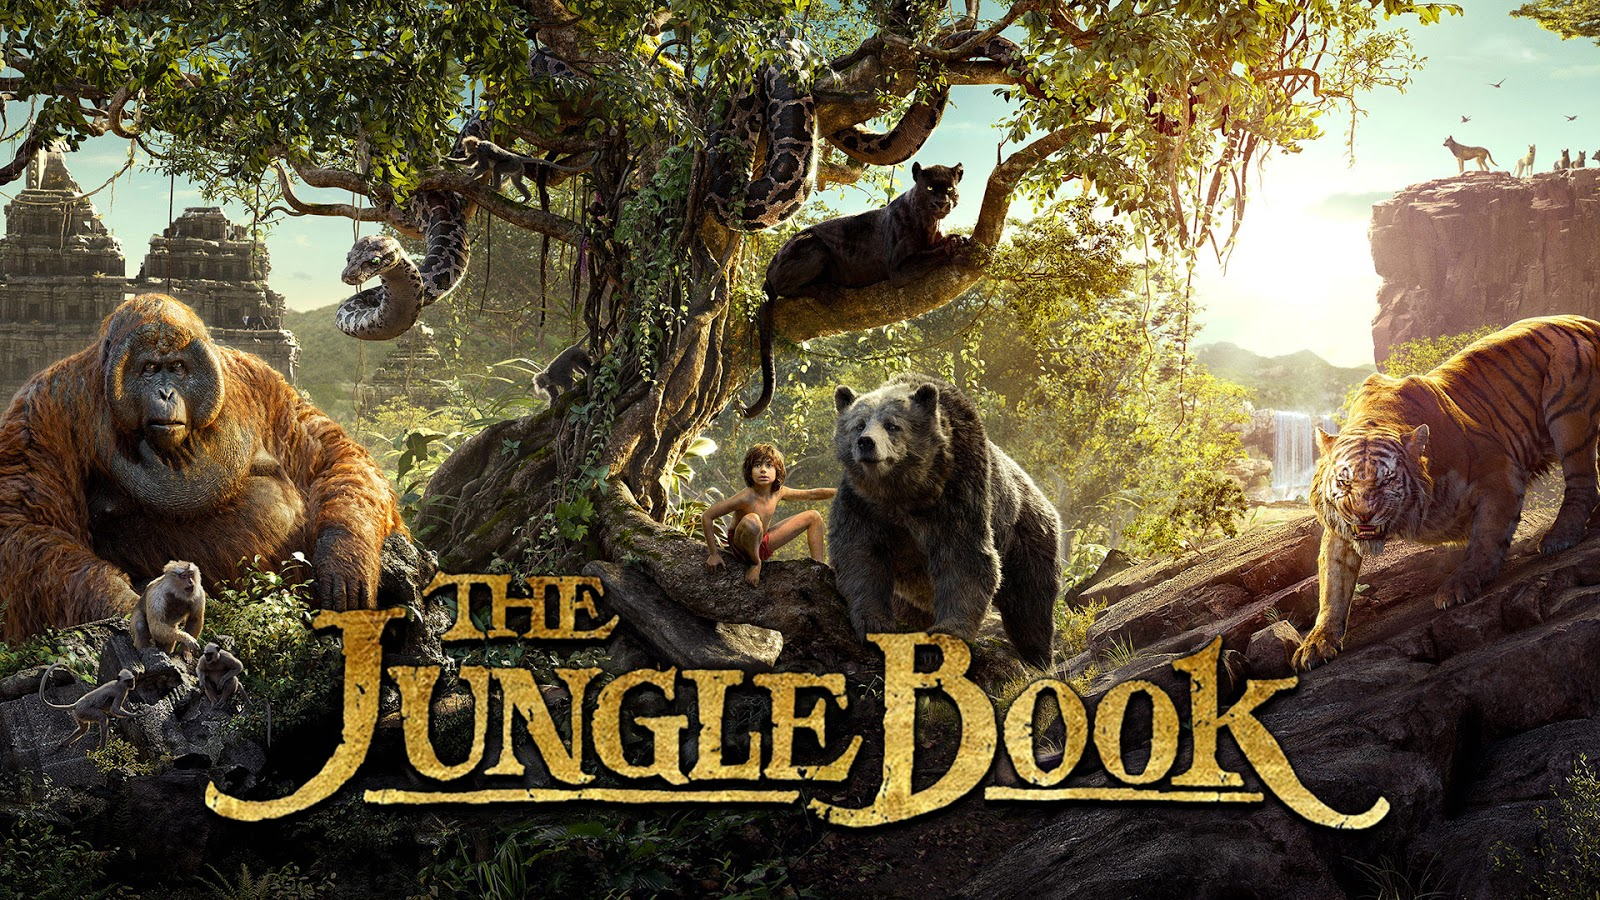 HD The Jungle Book photos screen shots poster